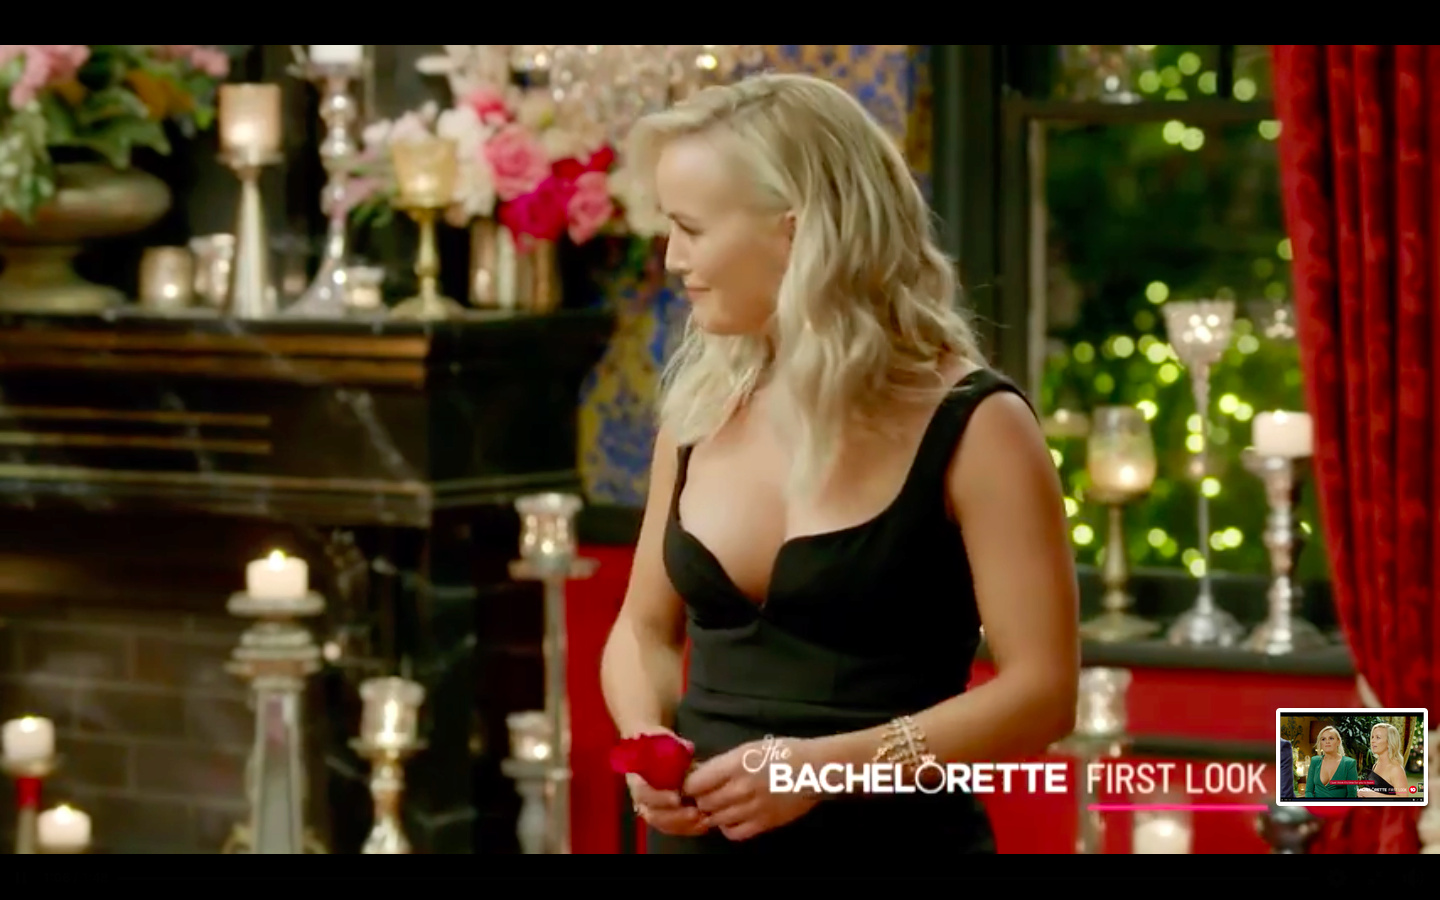 Bachelorette Australia - Season 6 - Elly and Becky Miles - Screencaps - Discussion - *Sleuthing Spoilers*  - Page 5 Screen74